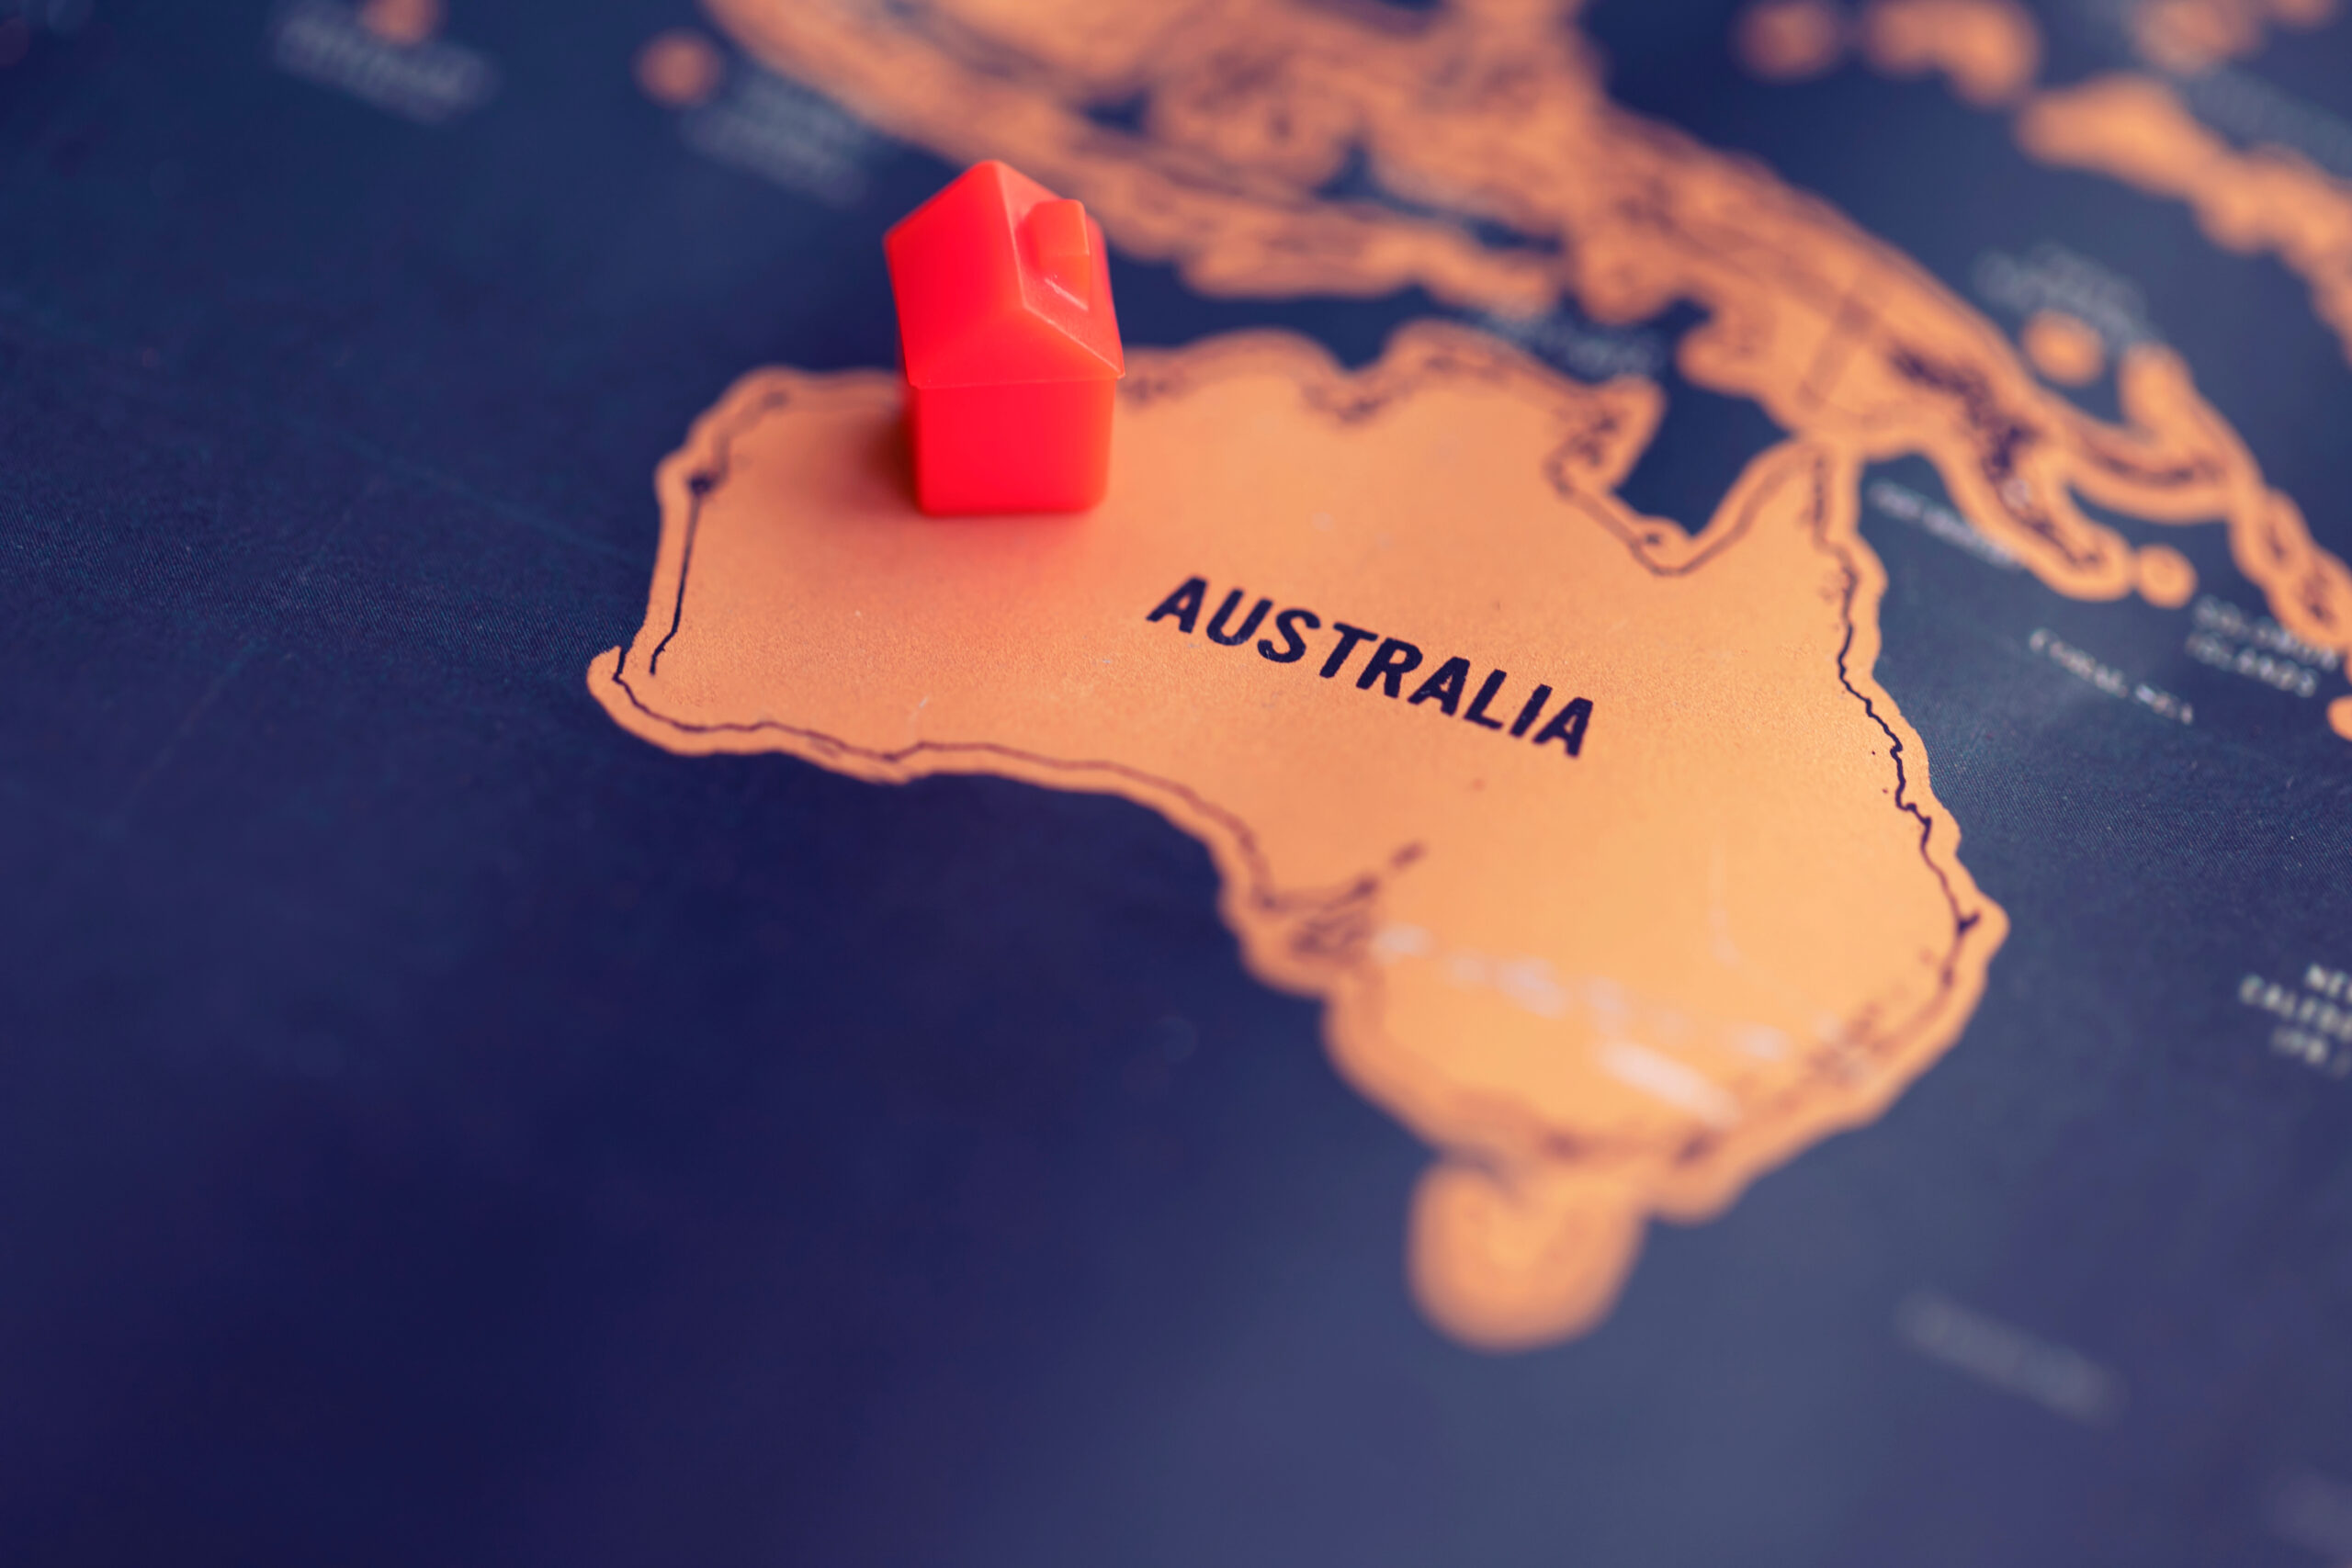 House,On,Australia,Part,Of,World,Map.,Real,Estate,In